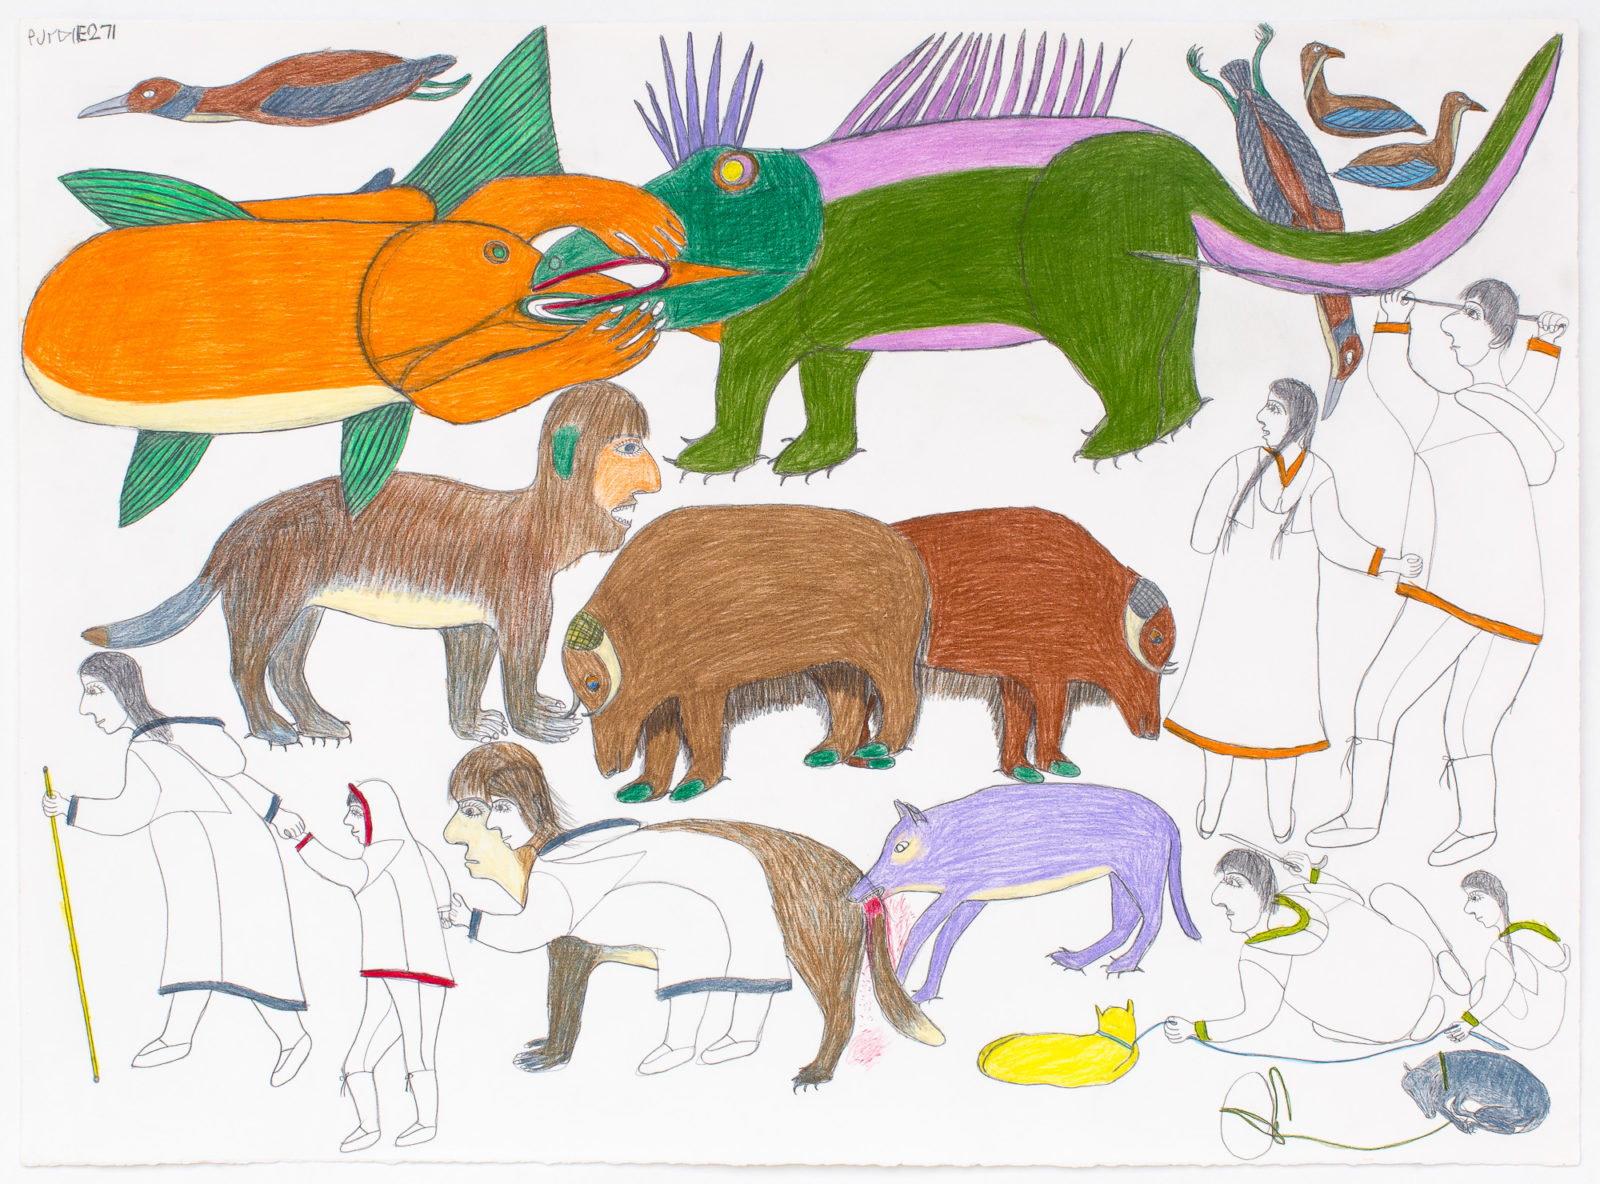 Janet Kigusiuq - untitled (creatures)